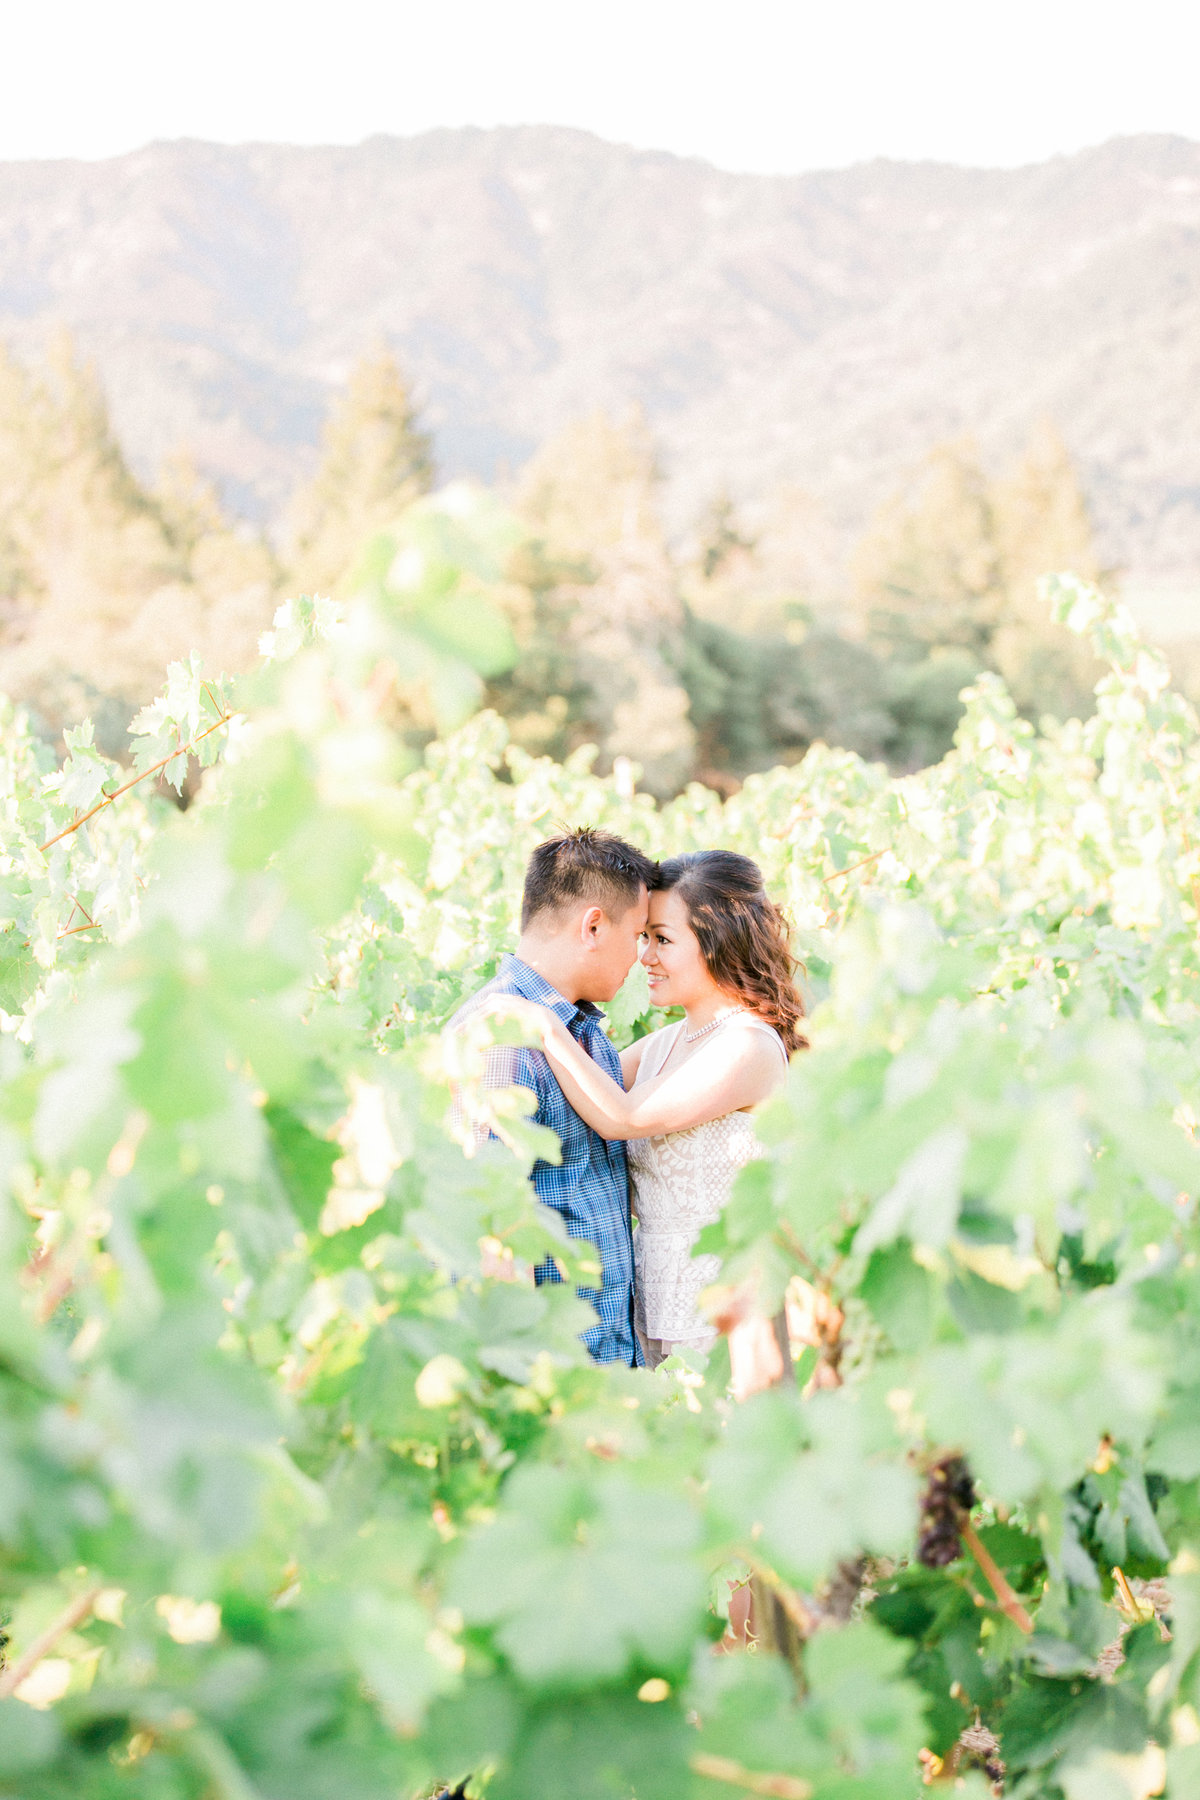 012_North-SFBayArea-vineyard-engagement-session